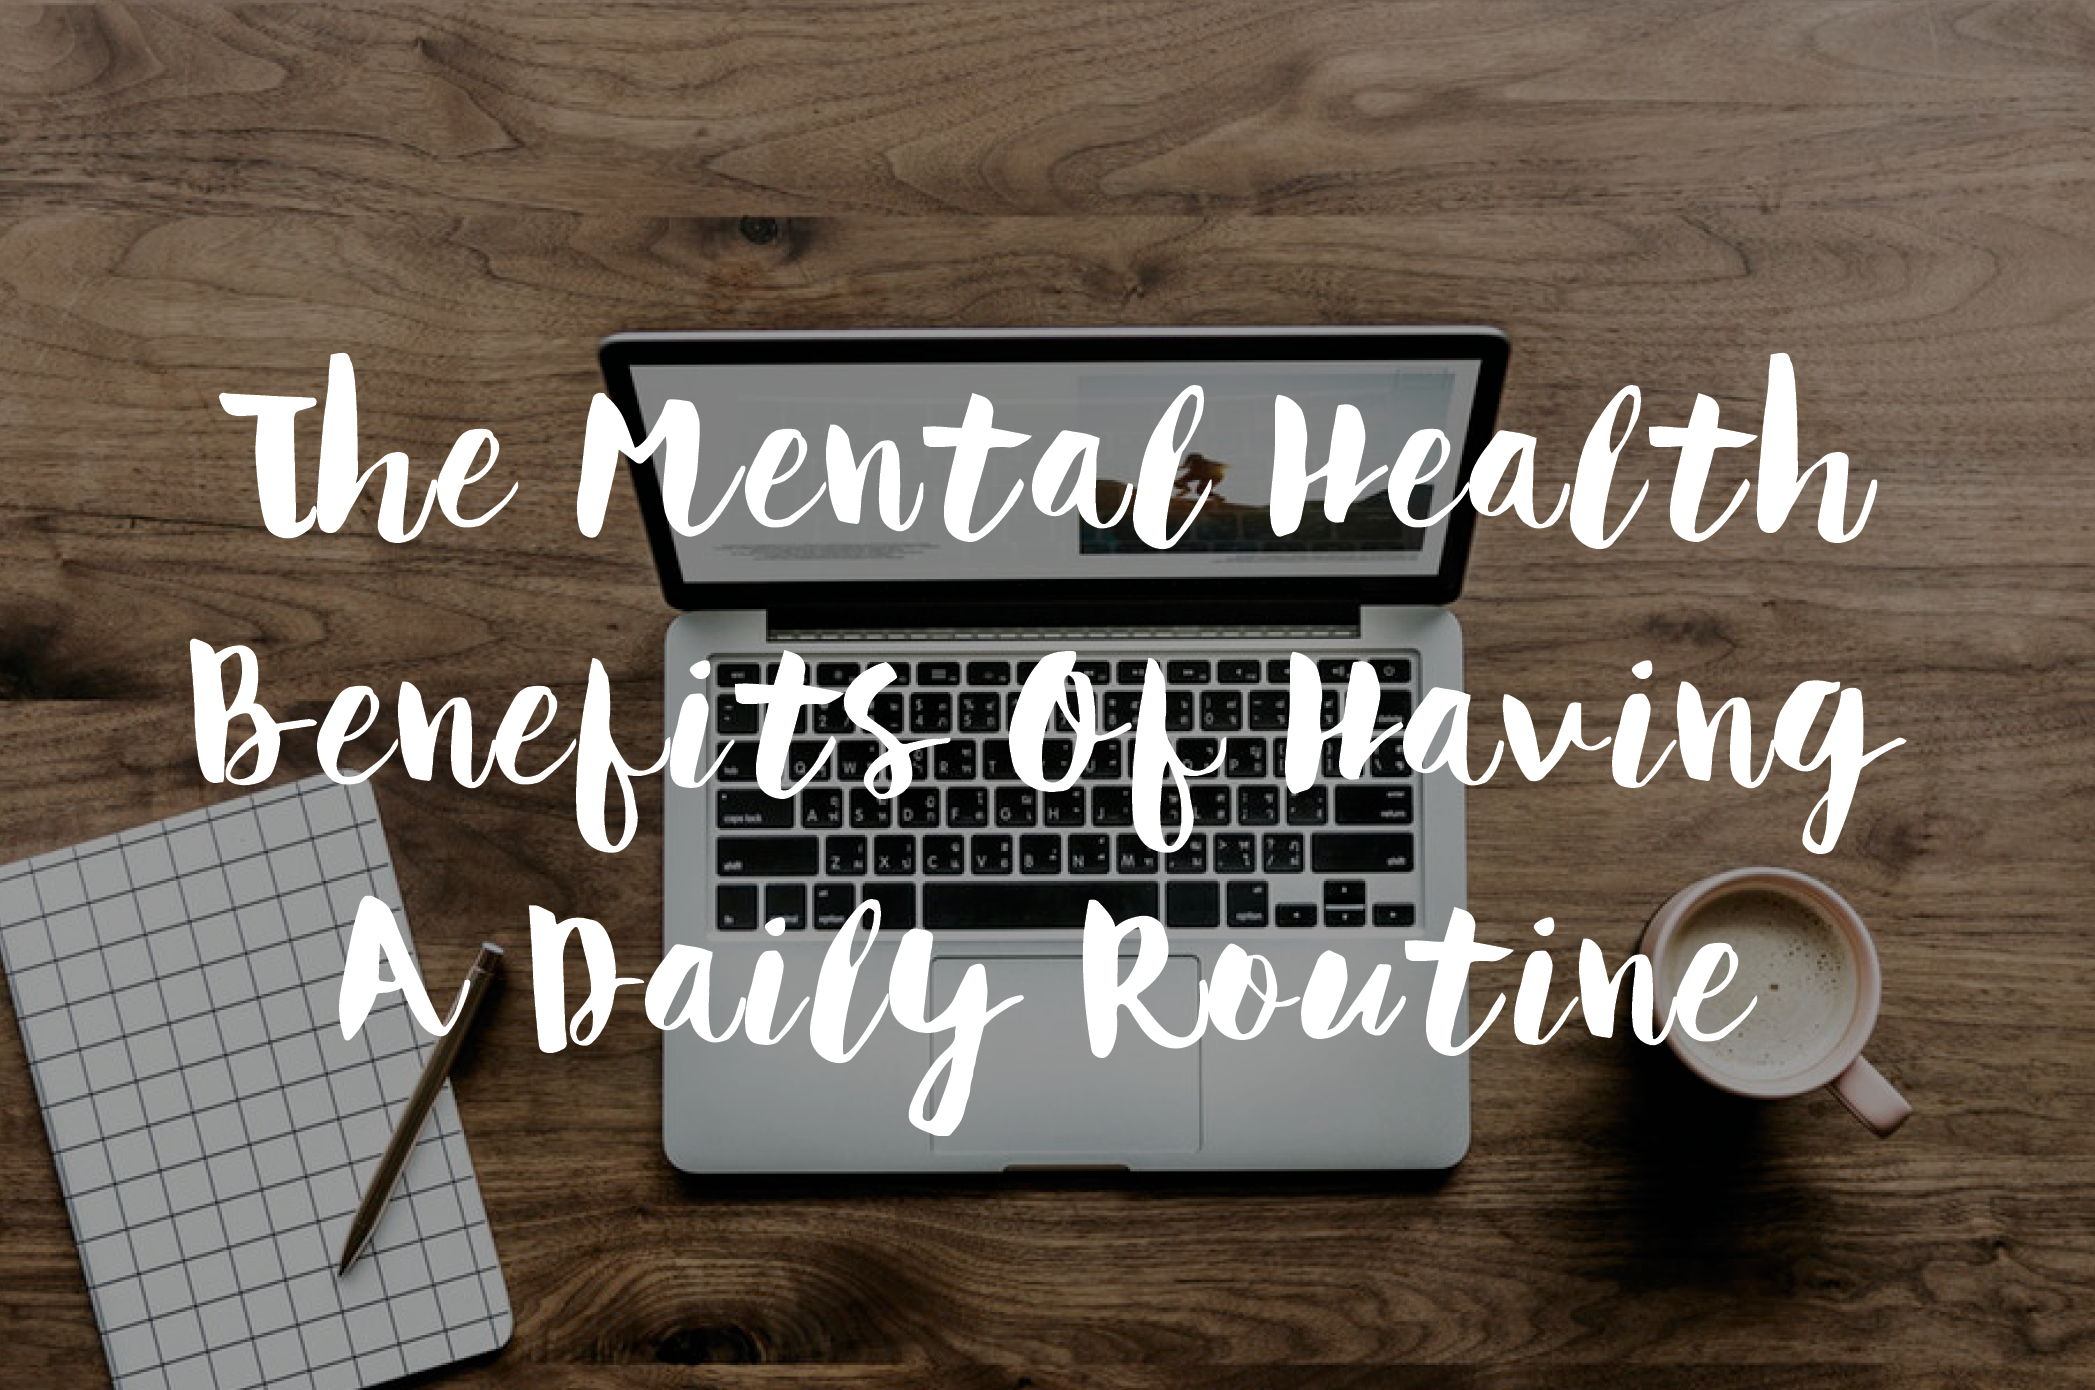 The Mental Health Benefits Of Having A Daily Routine